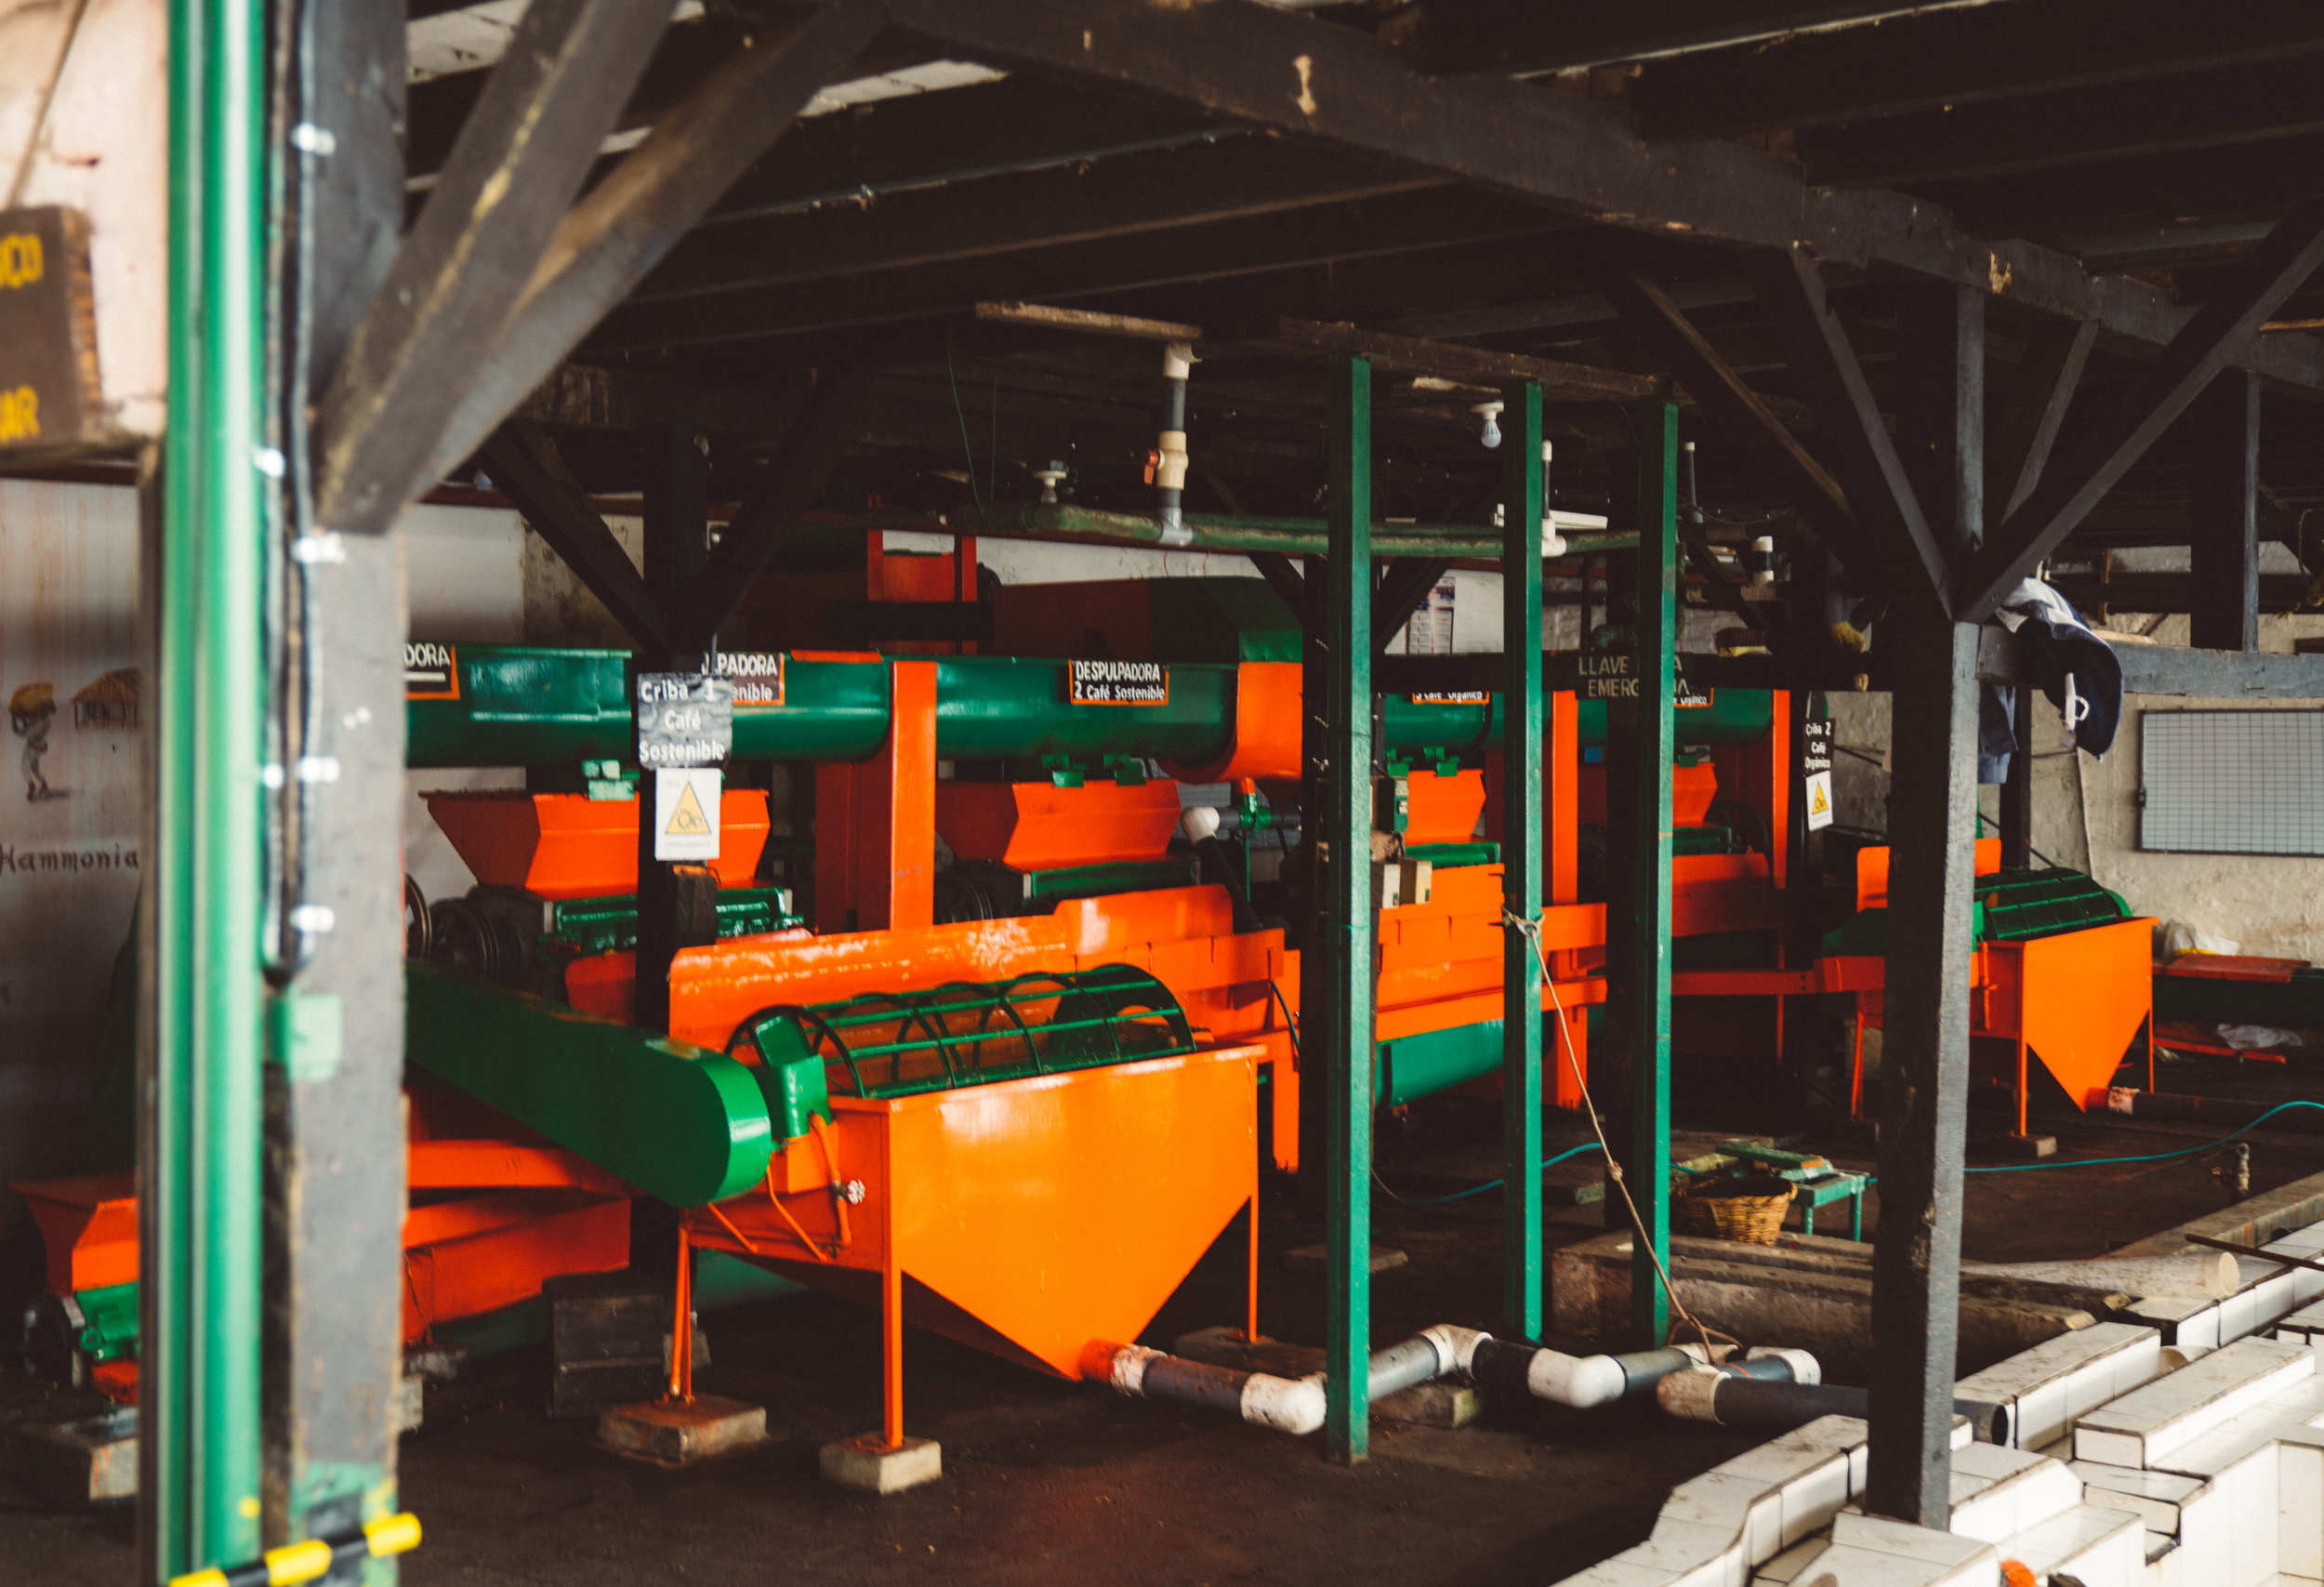 From the sorting tank pictured above, the berries flow down a tube into this expensive and shiny de-shelling machine.